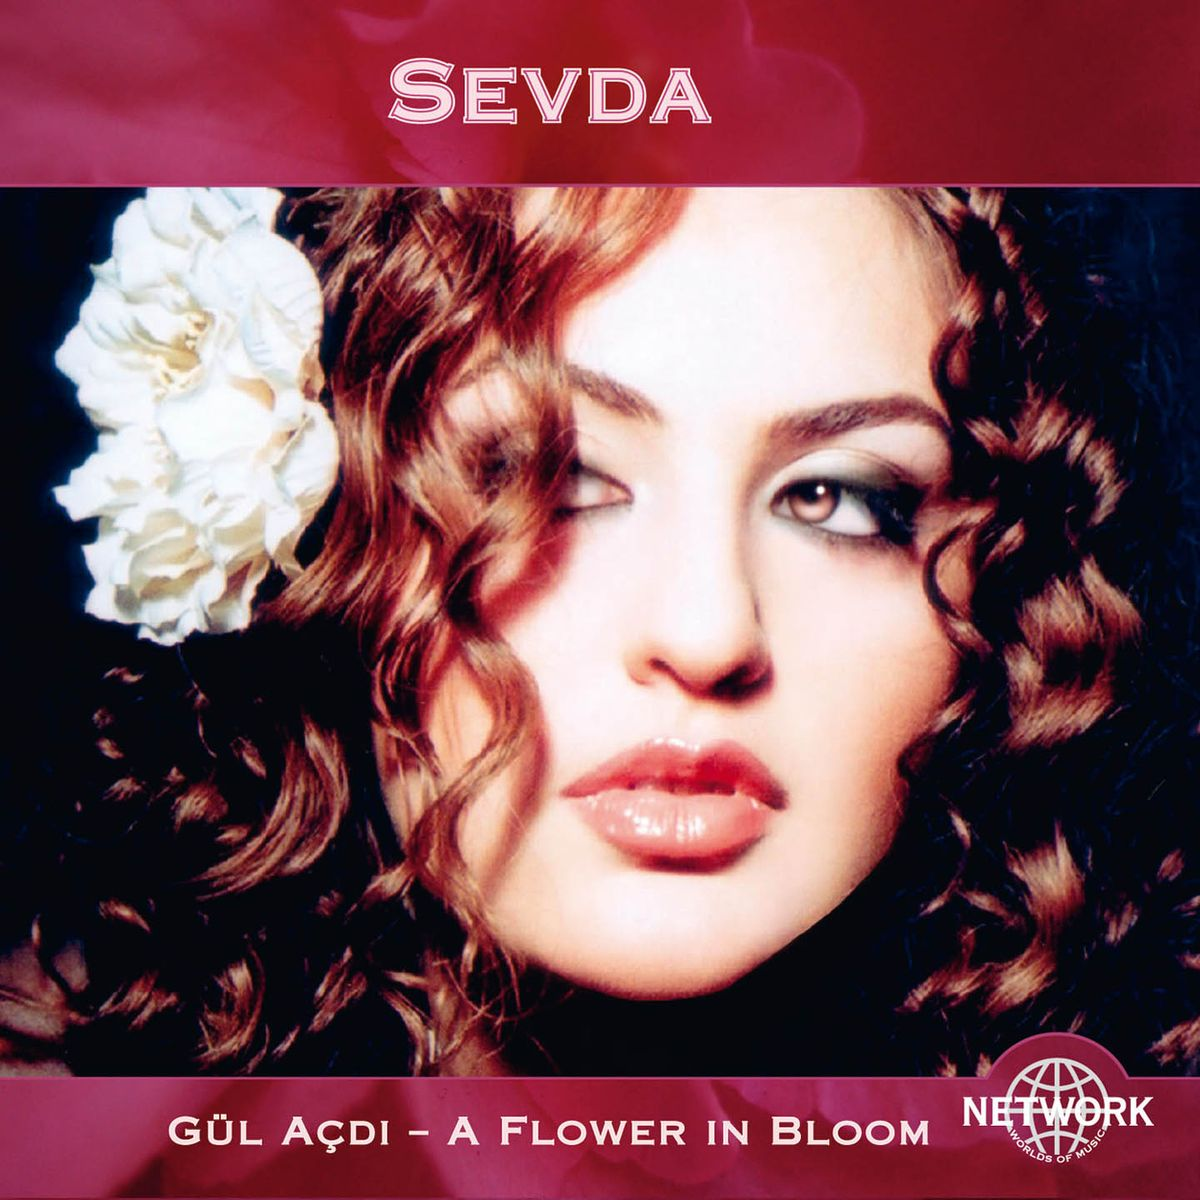 Sevda Alekperzadeh Alekperzadeh. A Flower in Bloom